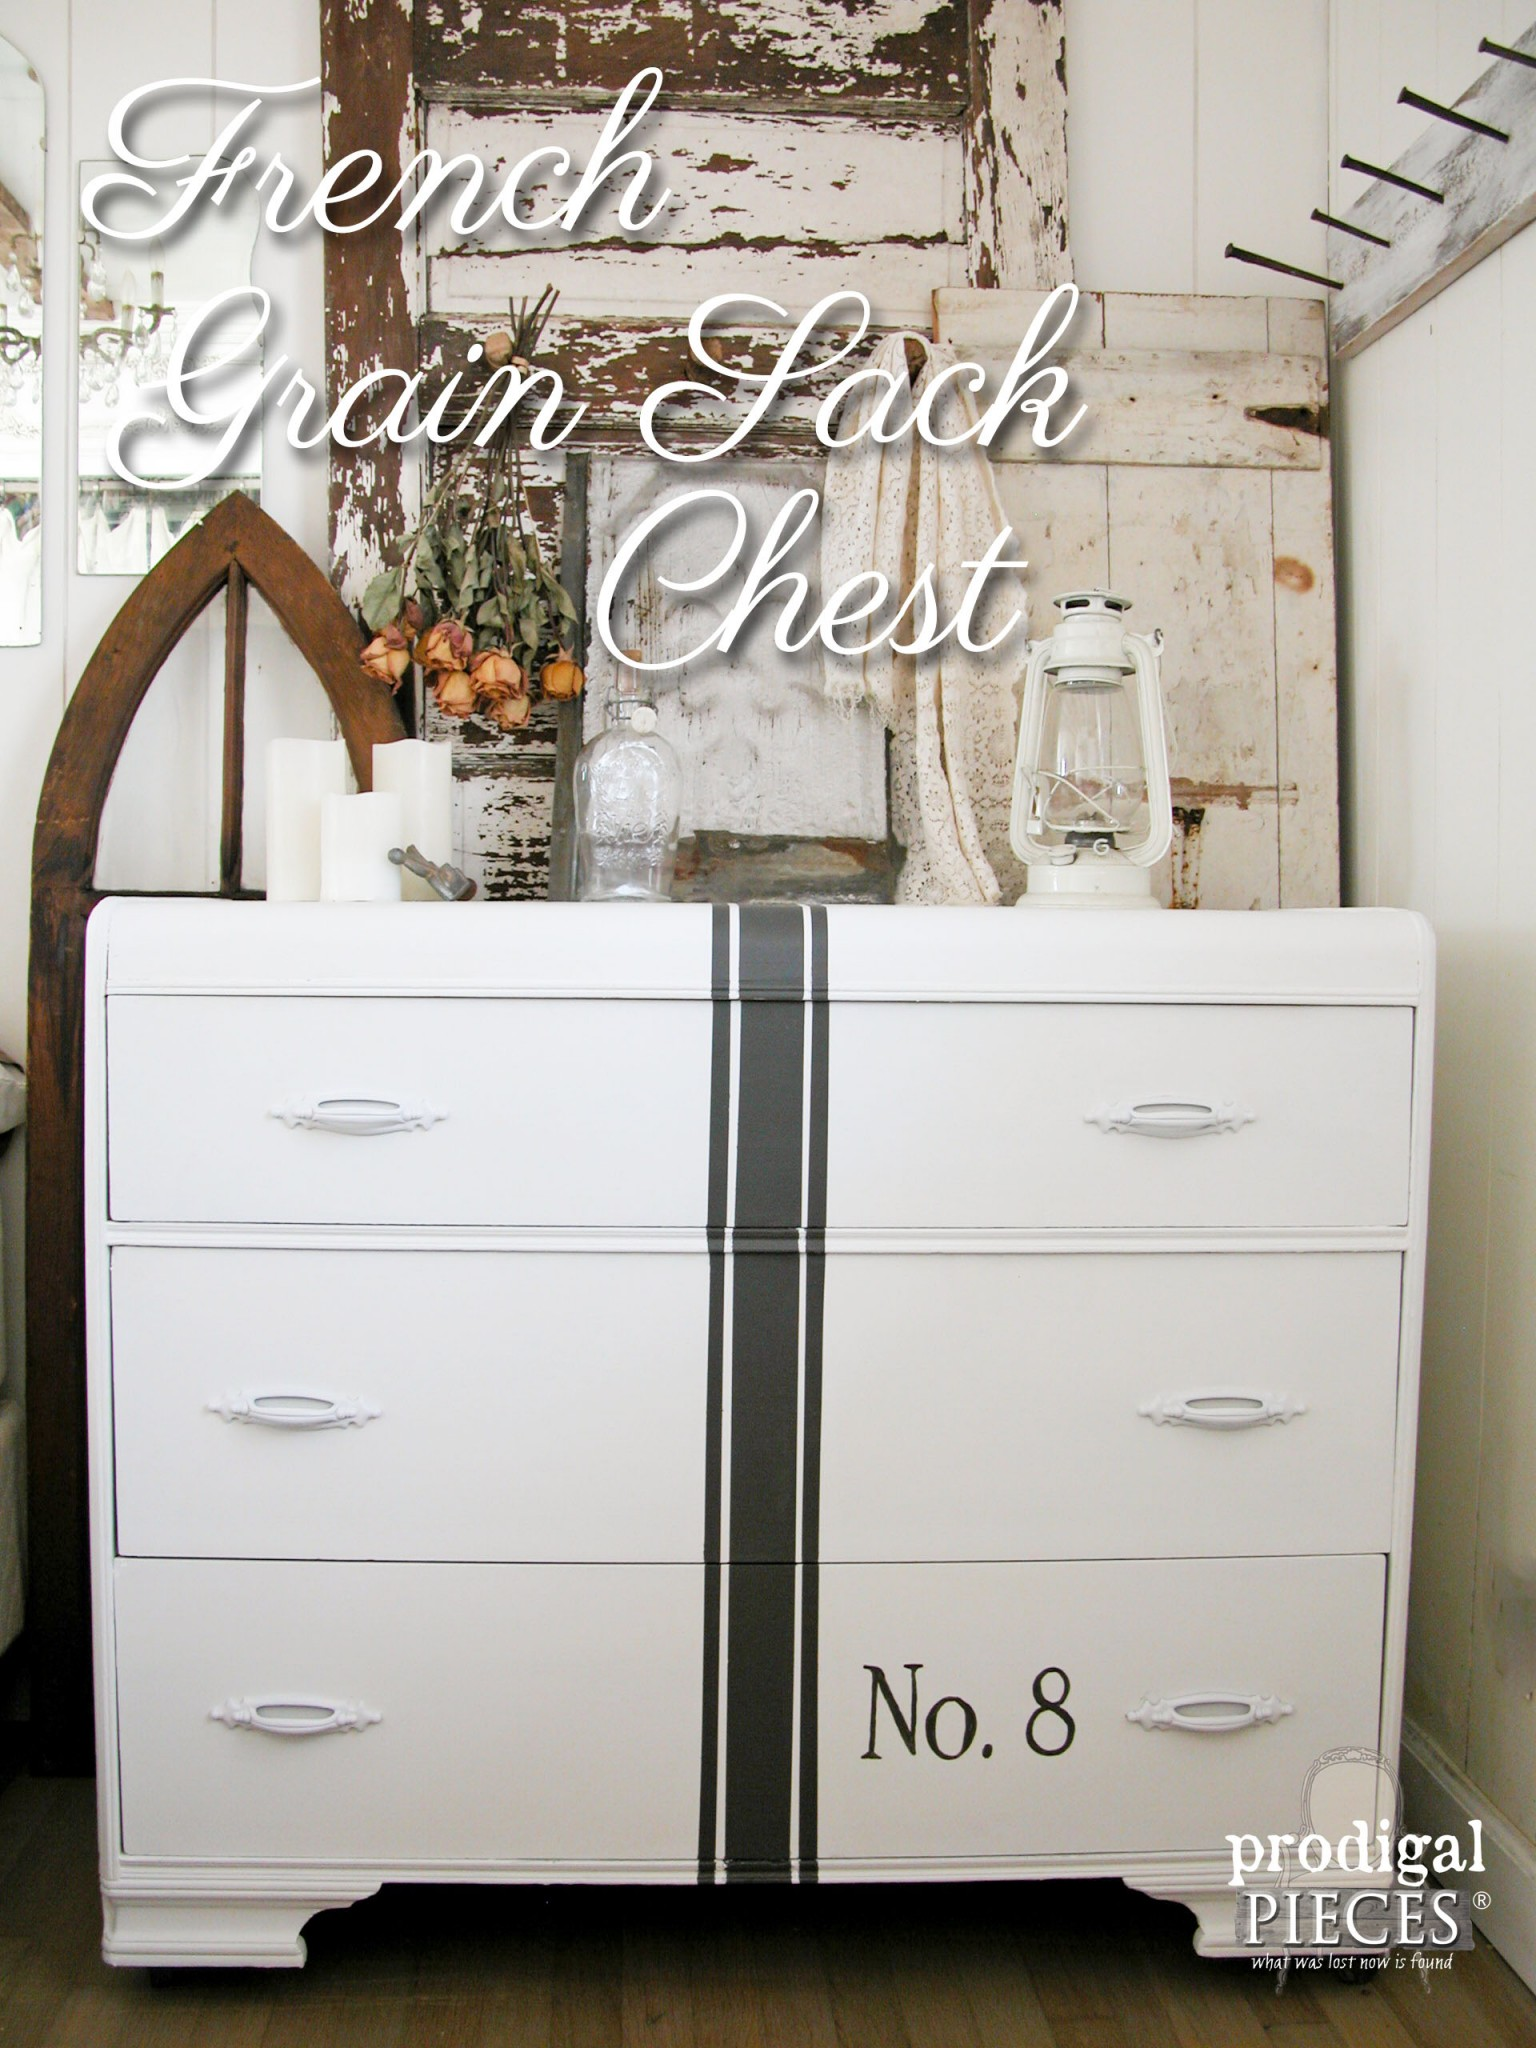 French Grain Sack Chest of Drawers by Prodigal Pieces | prodigalpieces.com